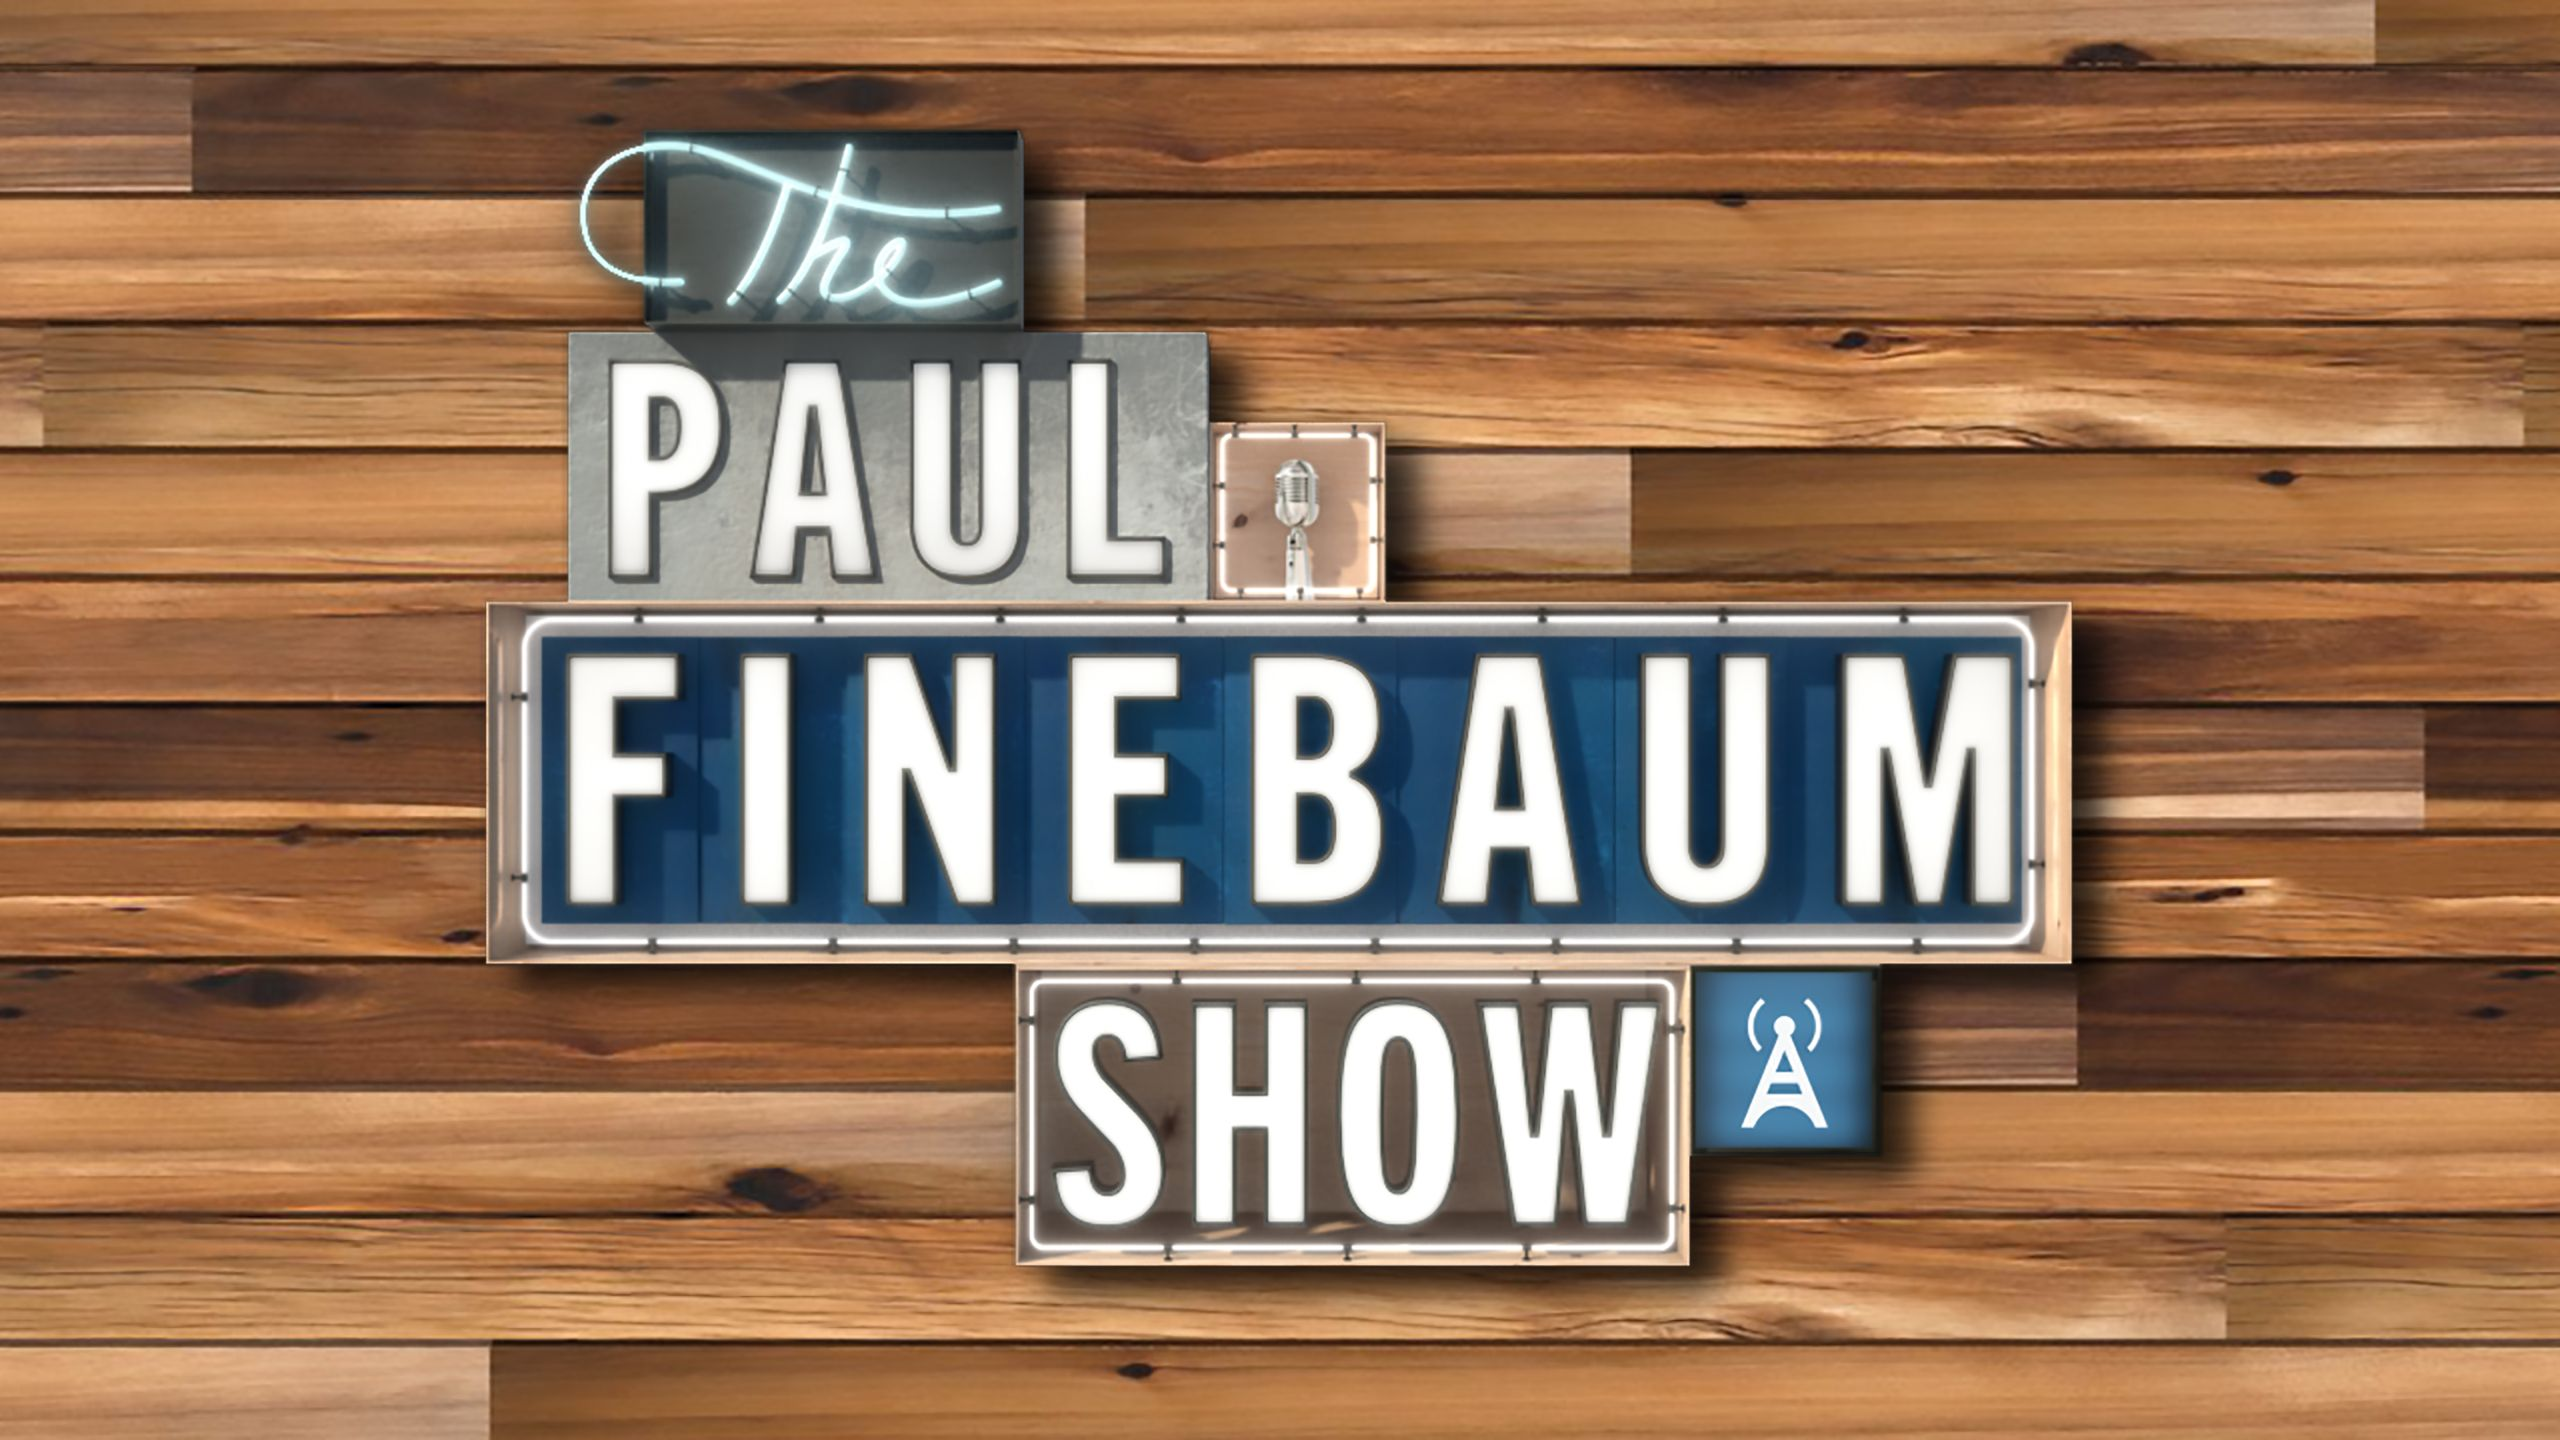 Fri, 3/16 - The Paul Finebaum Show